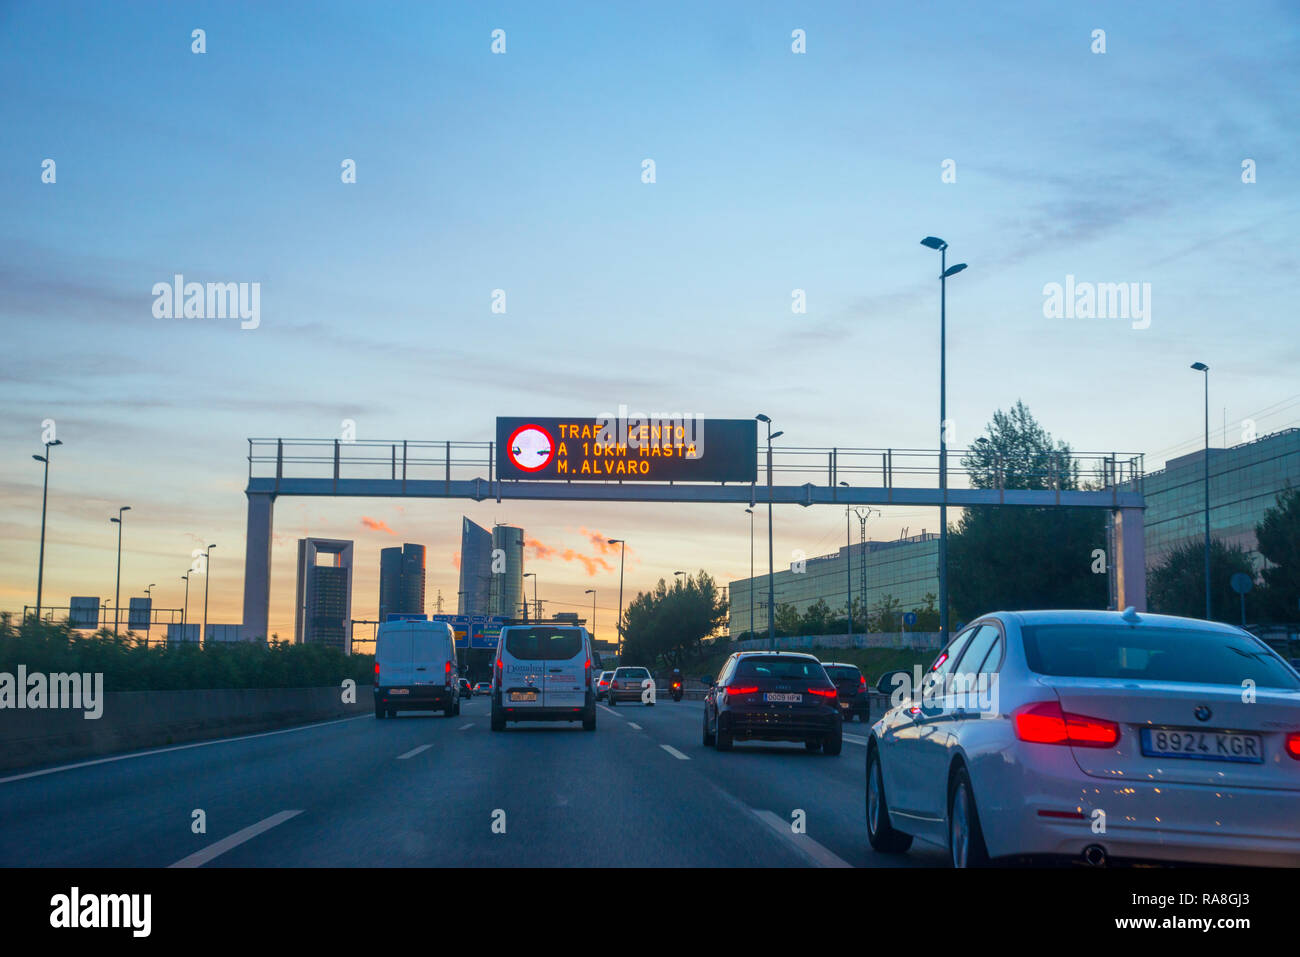 A-1 freeway at dusk. Madrid, Spain. Stock Photo